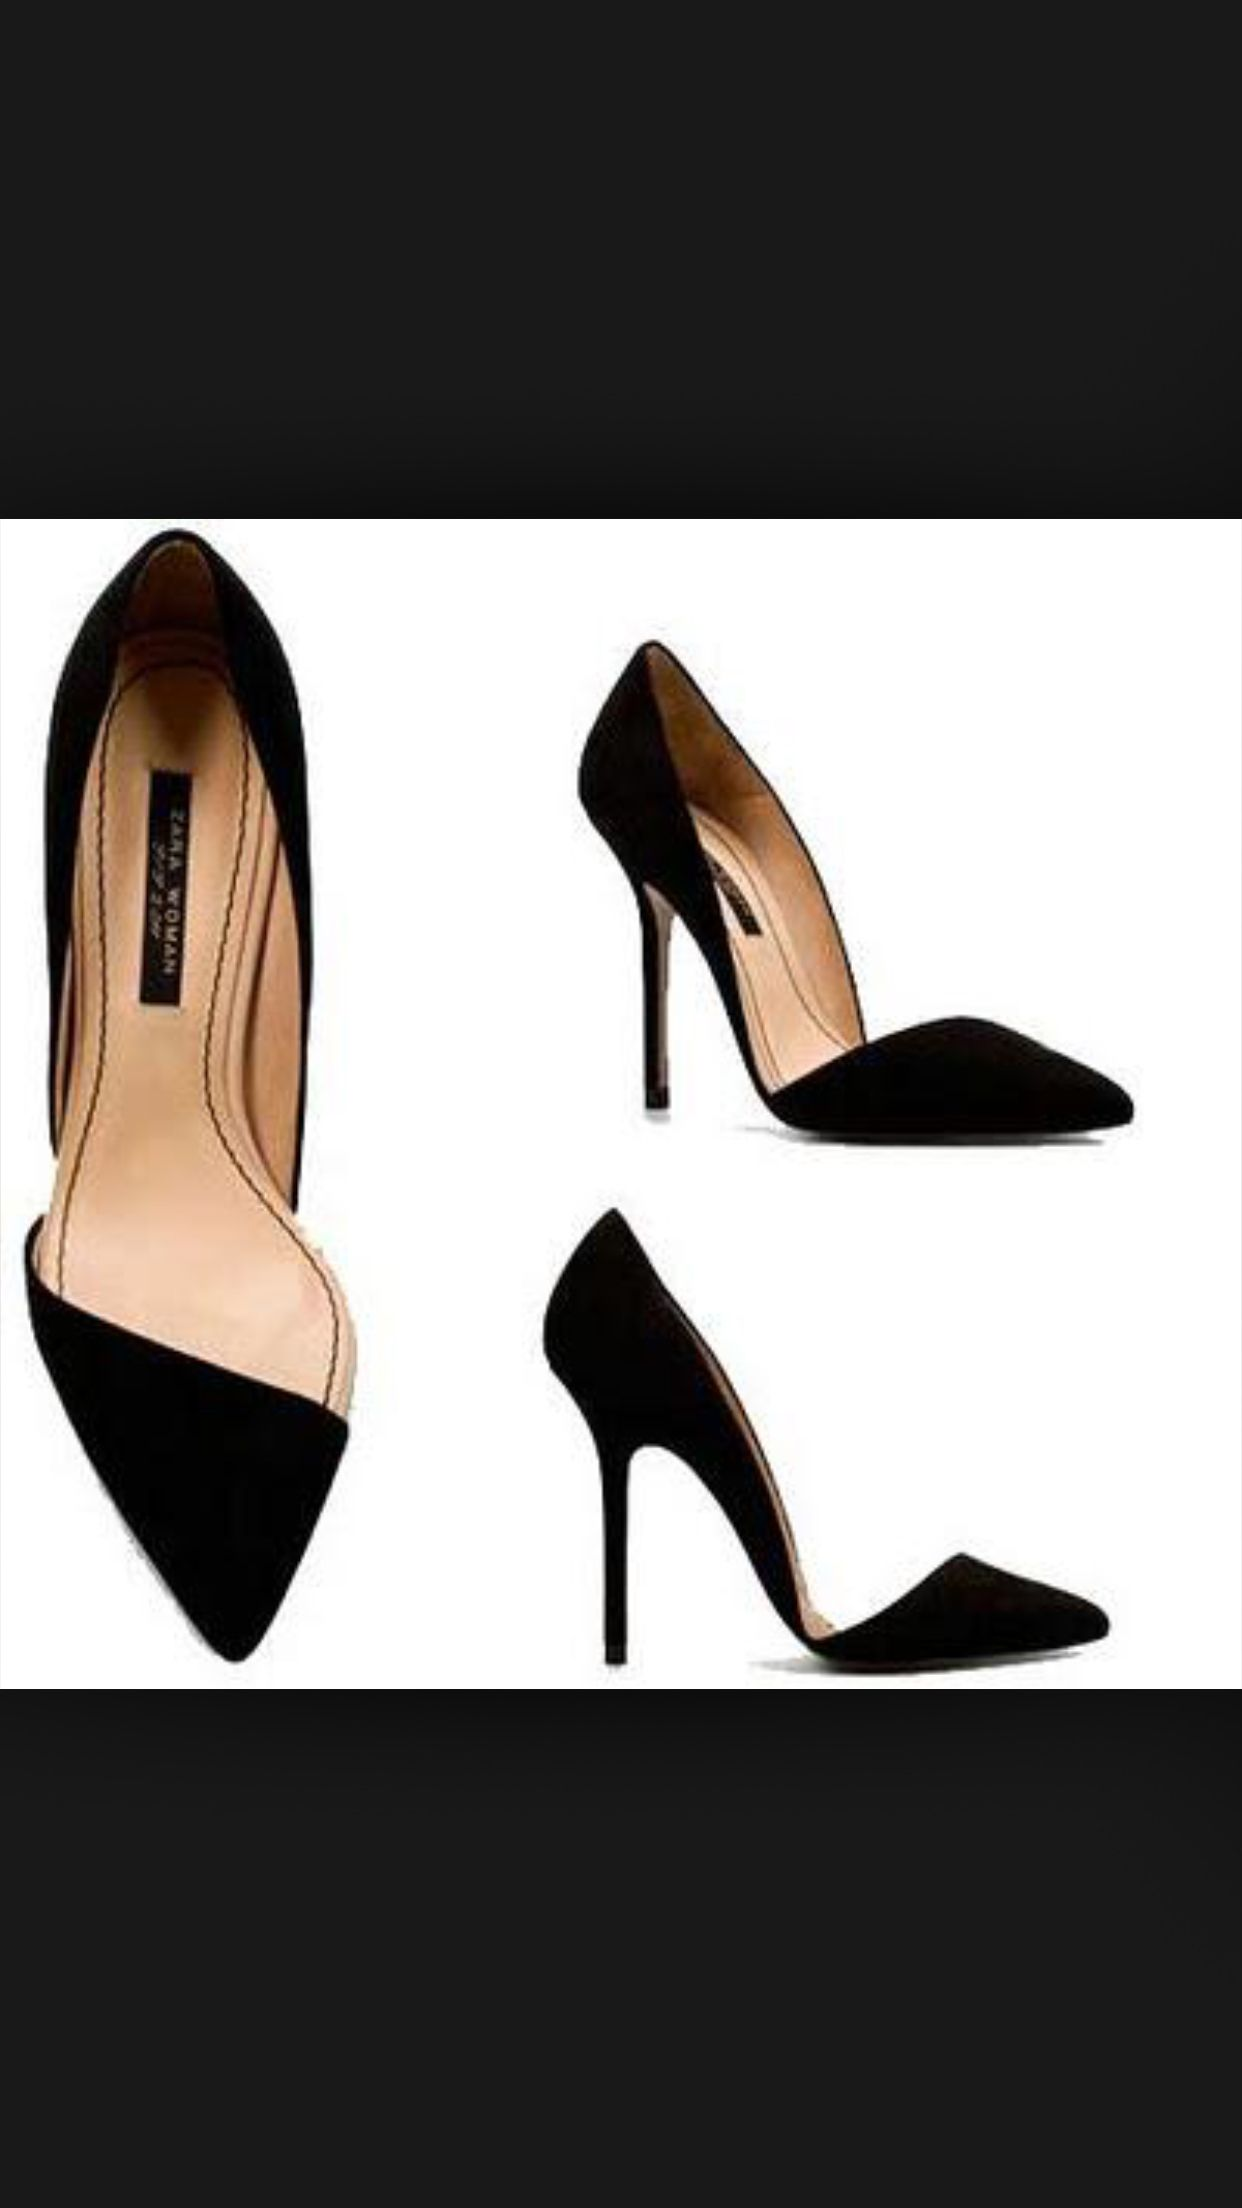 bdec833a501 Love pumps with the sides opened up  ) Black Stilettos